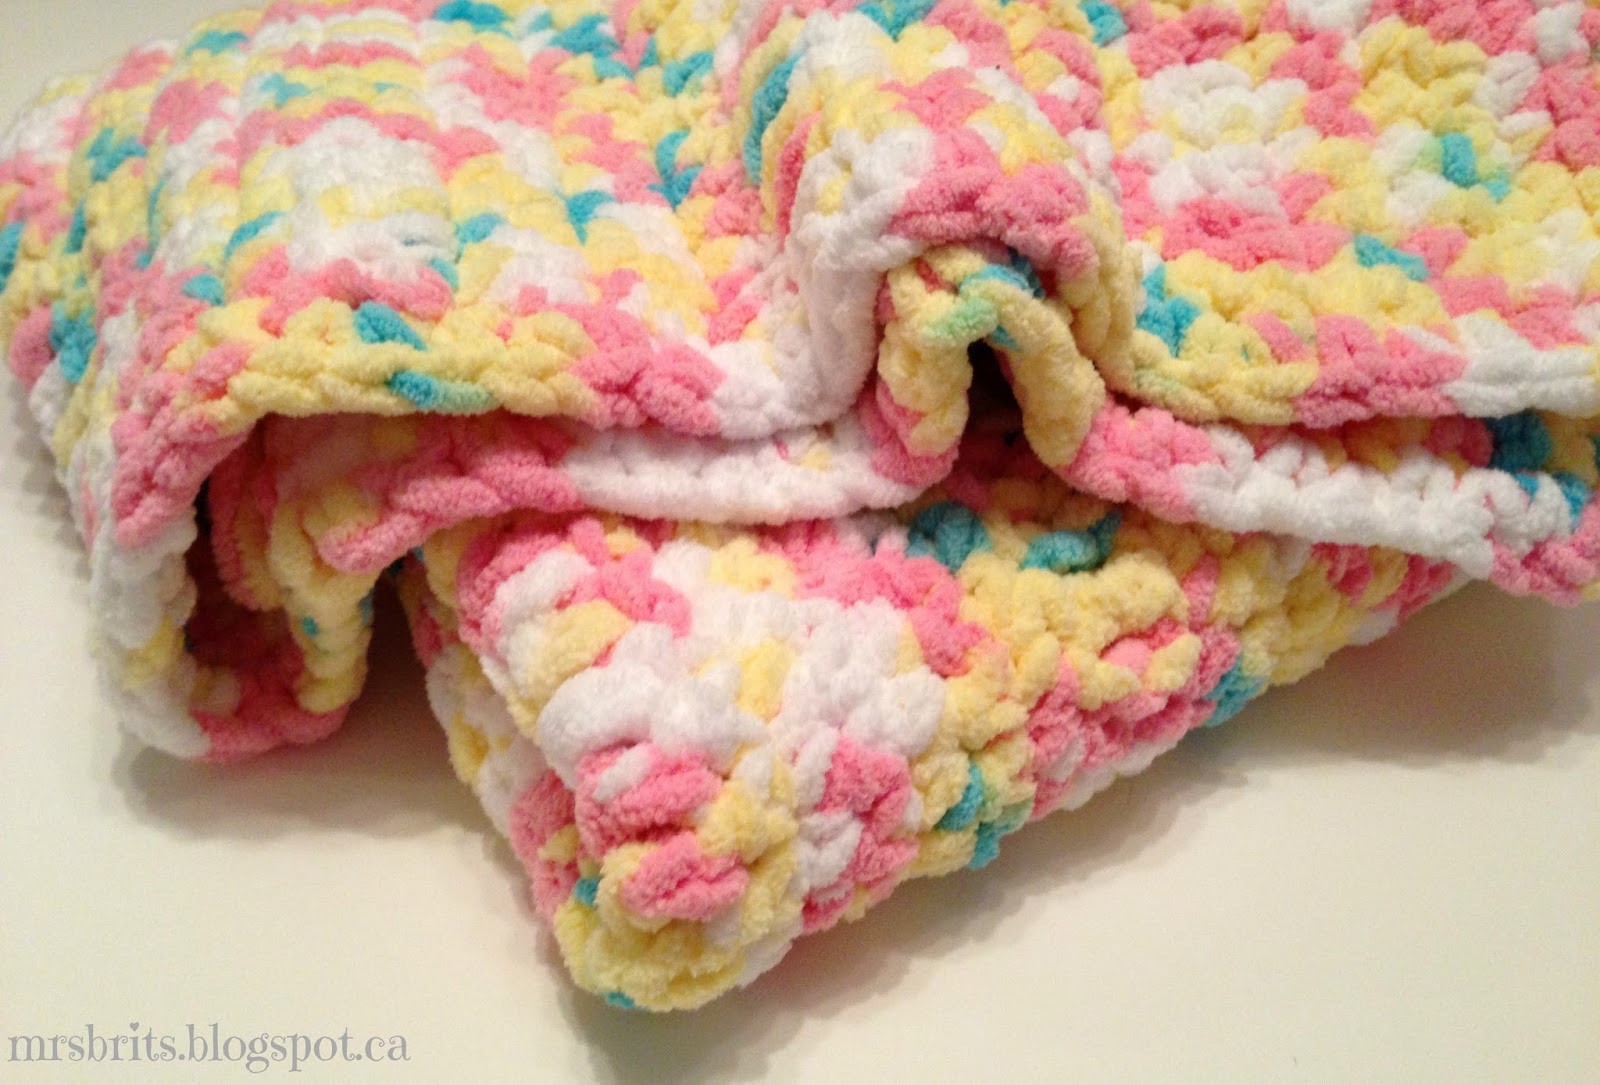 Bernat Crochet Blanket Luxury Mrsbrits Sweet and Chunky Baby Afghan Crochet Pattern Of Incredible 49 Images Bernat Crochet Blanket